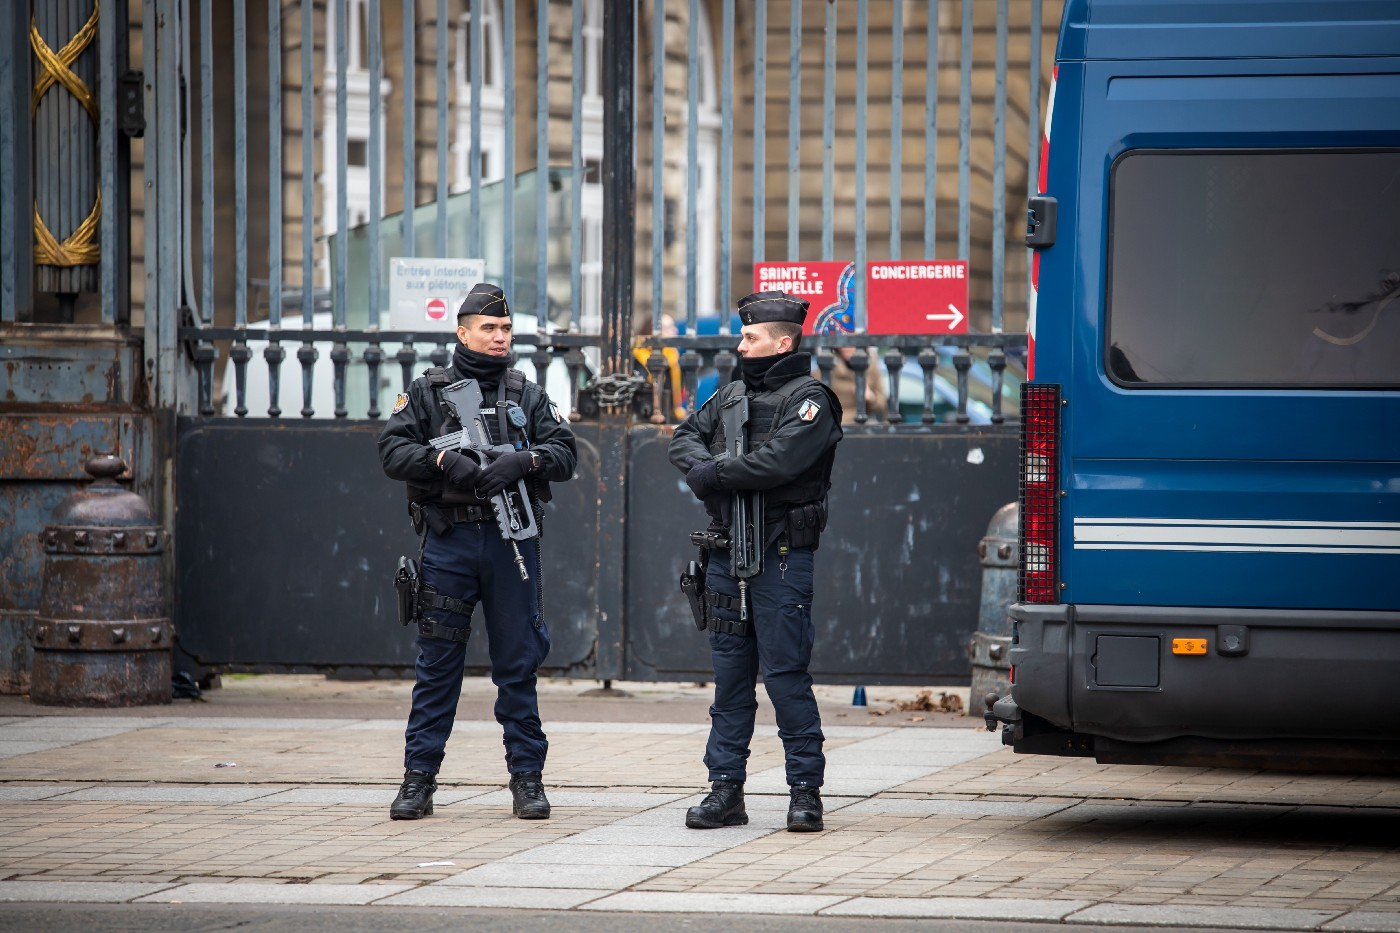 Police in France guard a gate